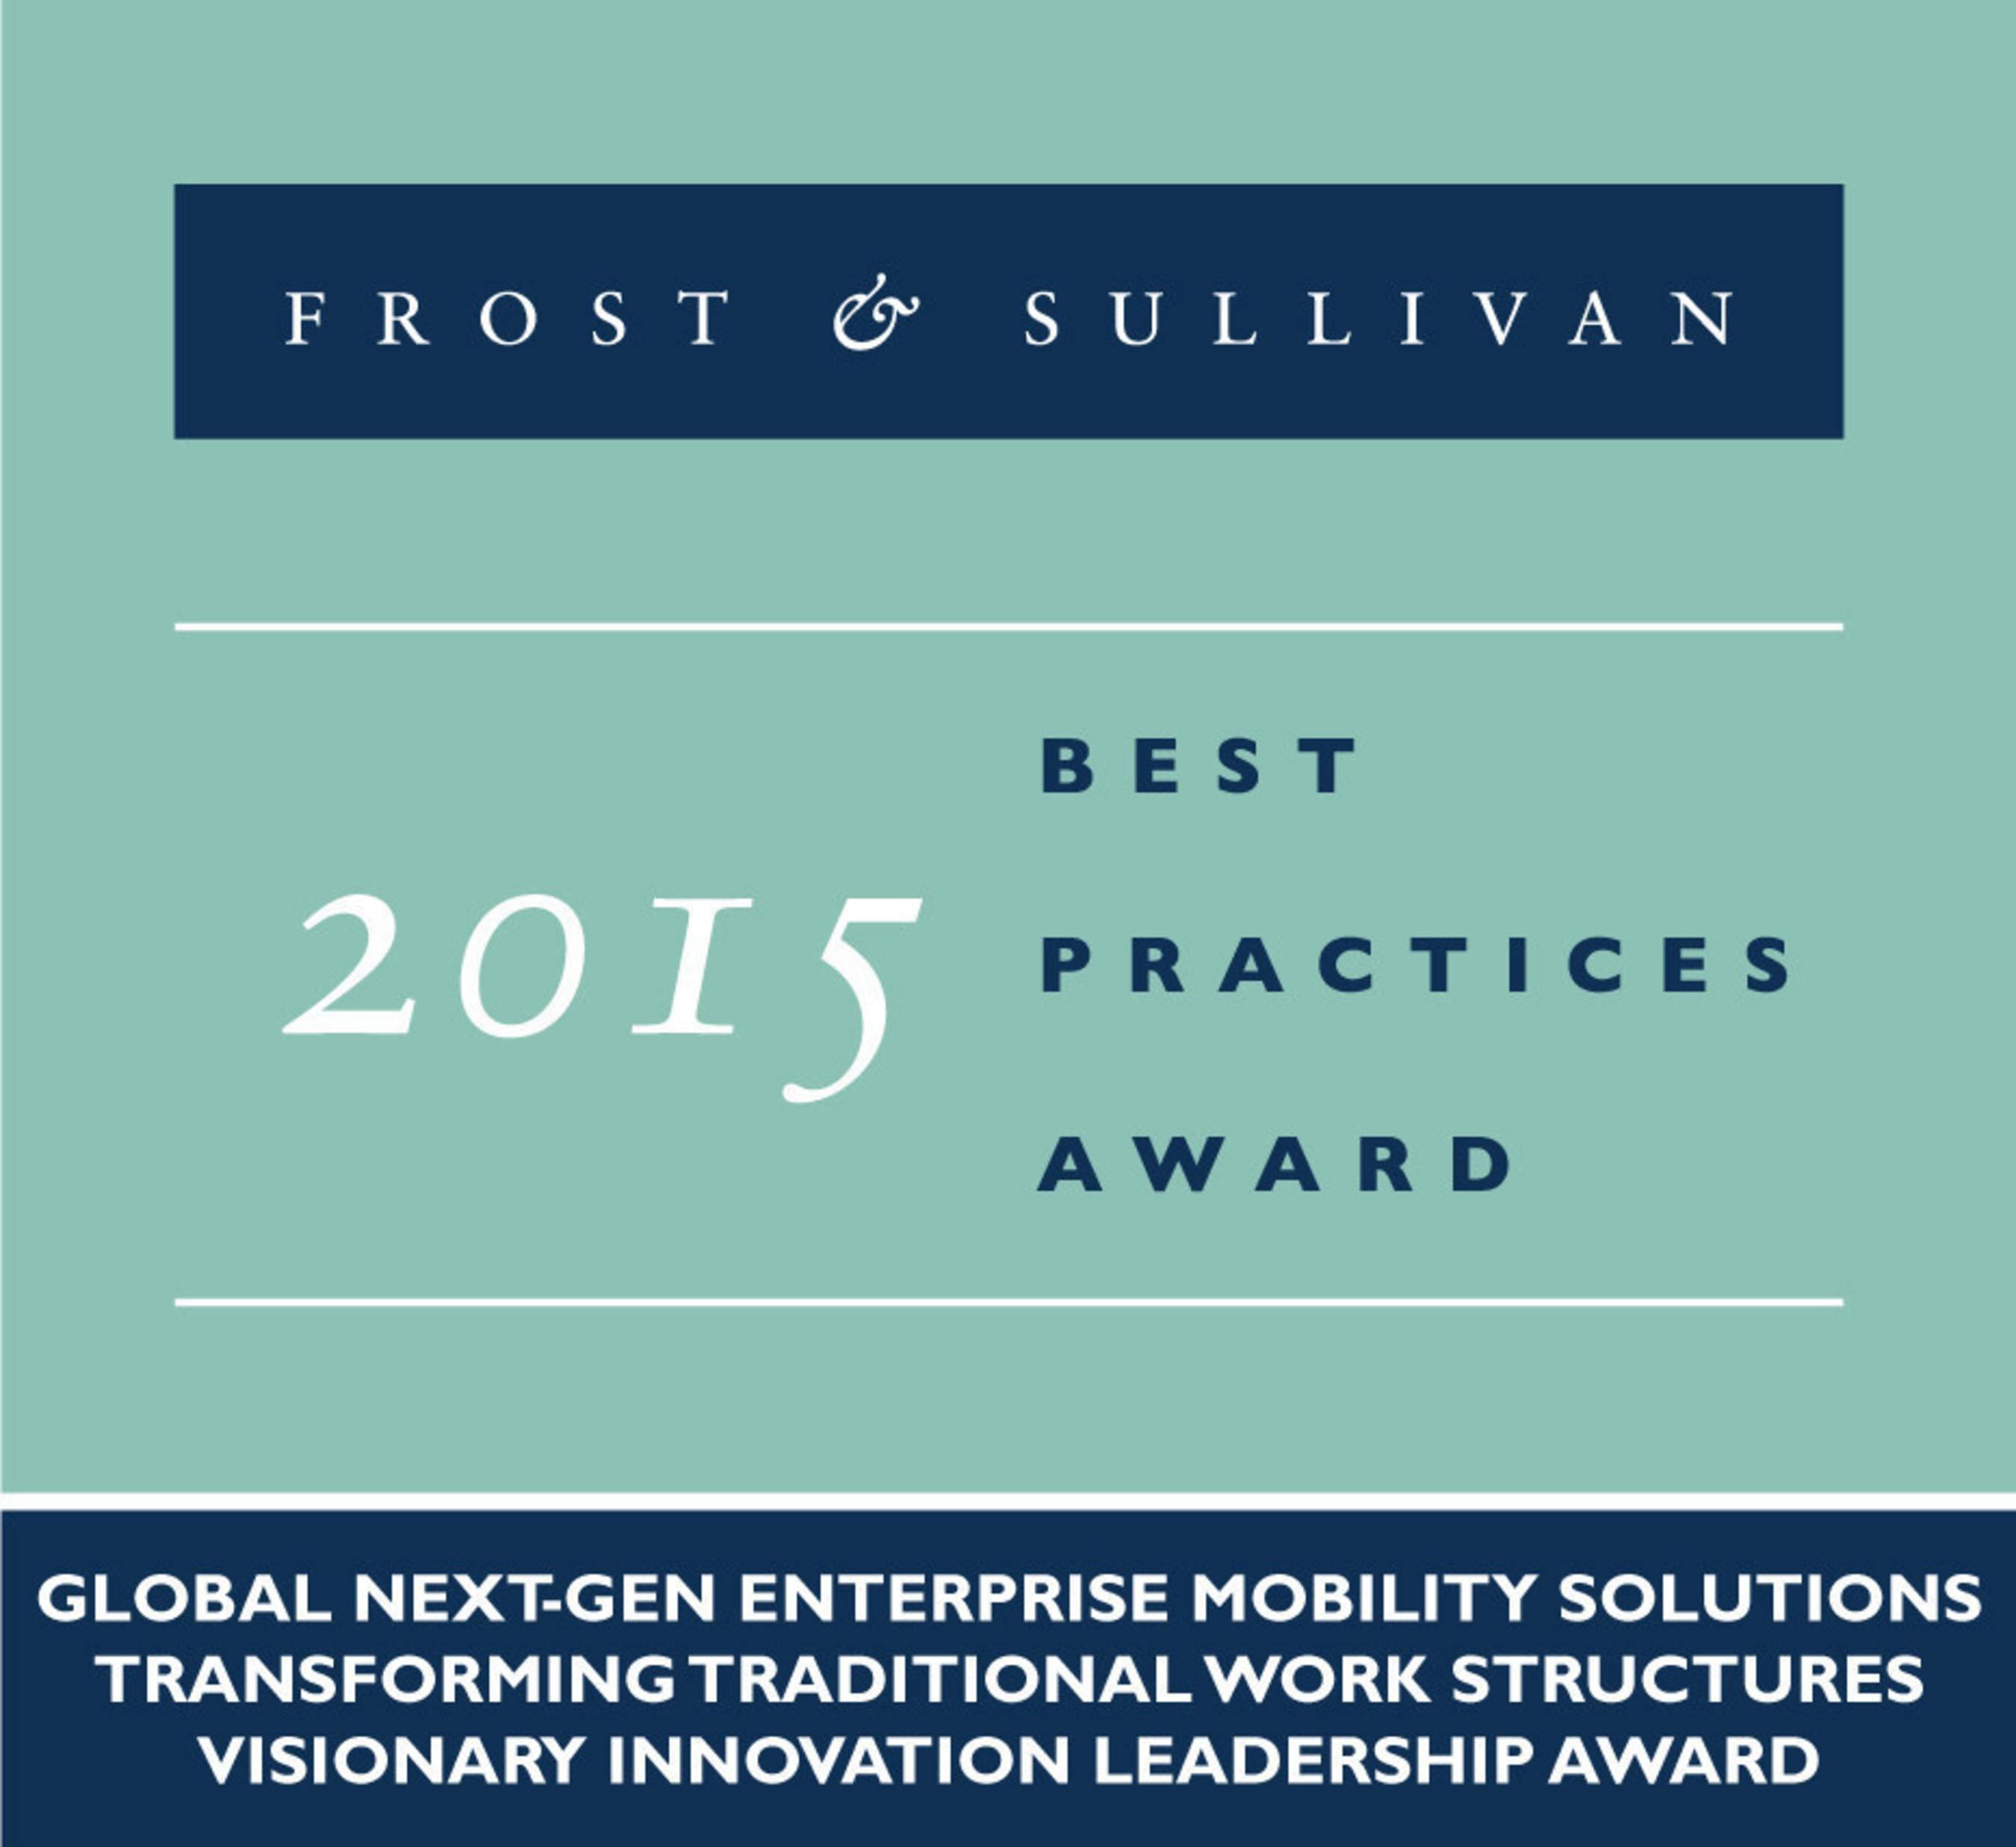 Frost & Sullivan Acclaims Citrix for Its Leading Business Mobility Solutions that Empower a New-age